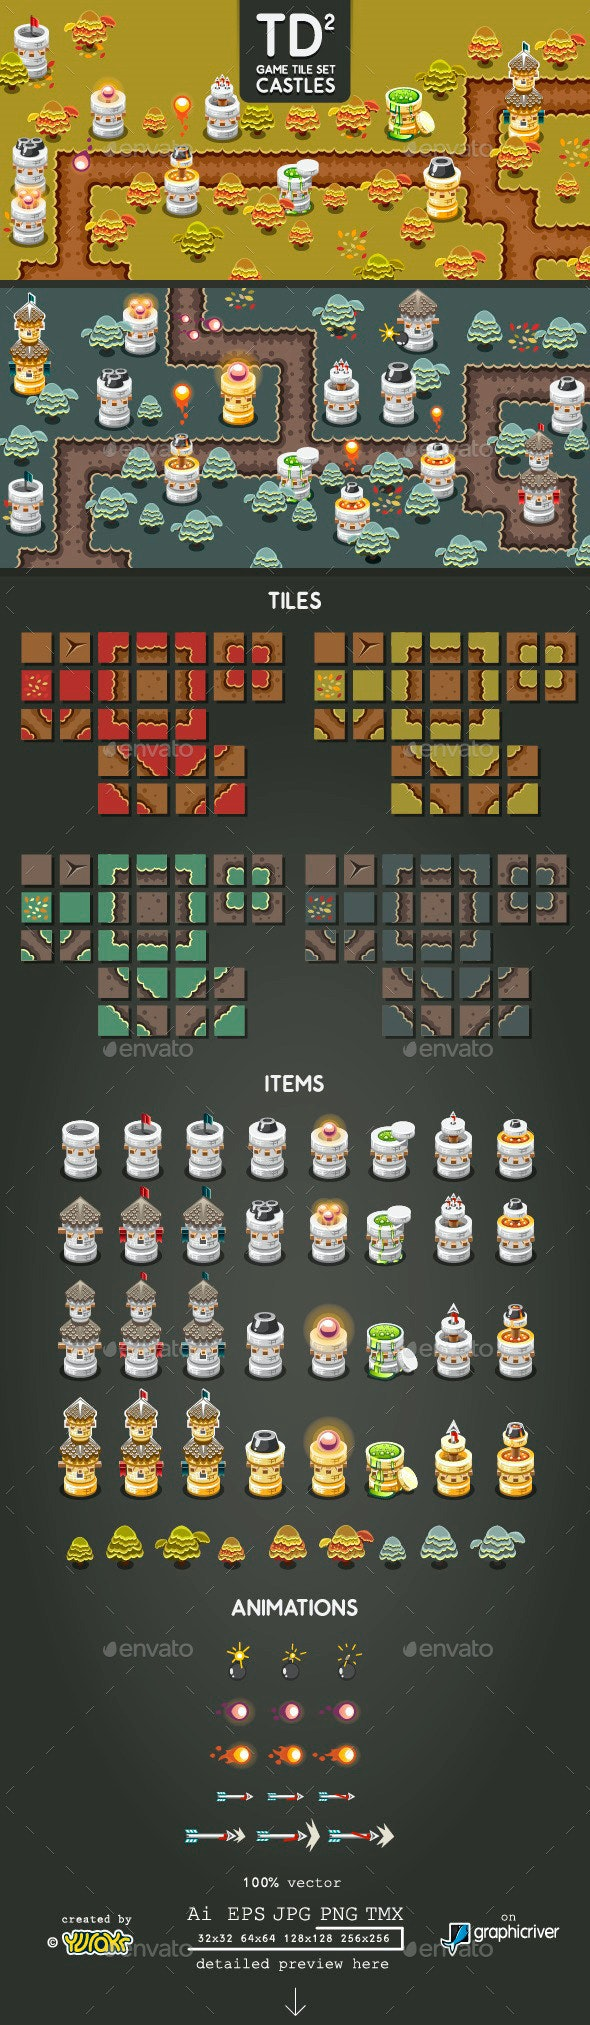 Tower Defence Game Tile Set Two - Tilesets Game Assets